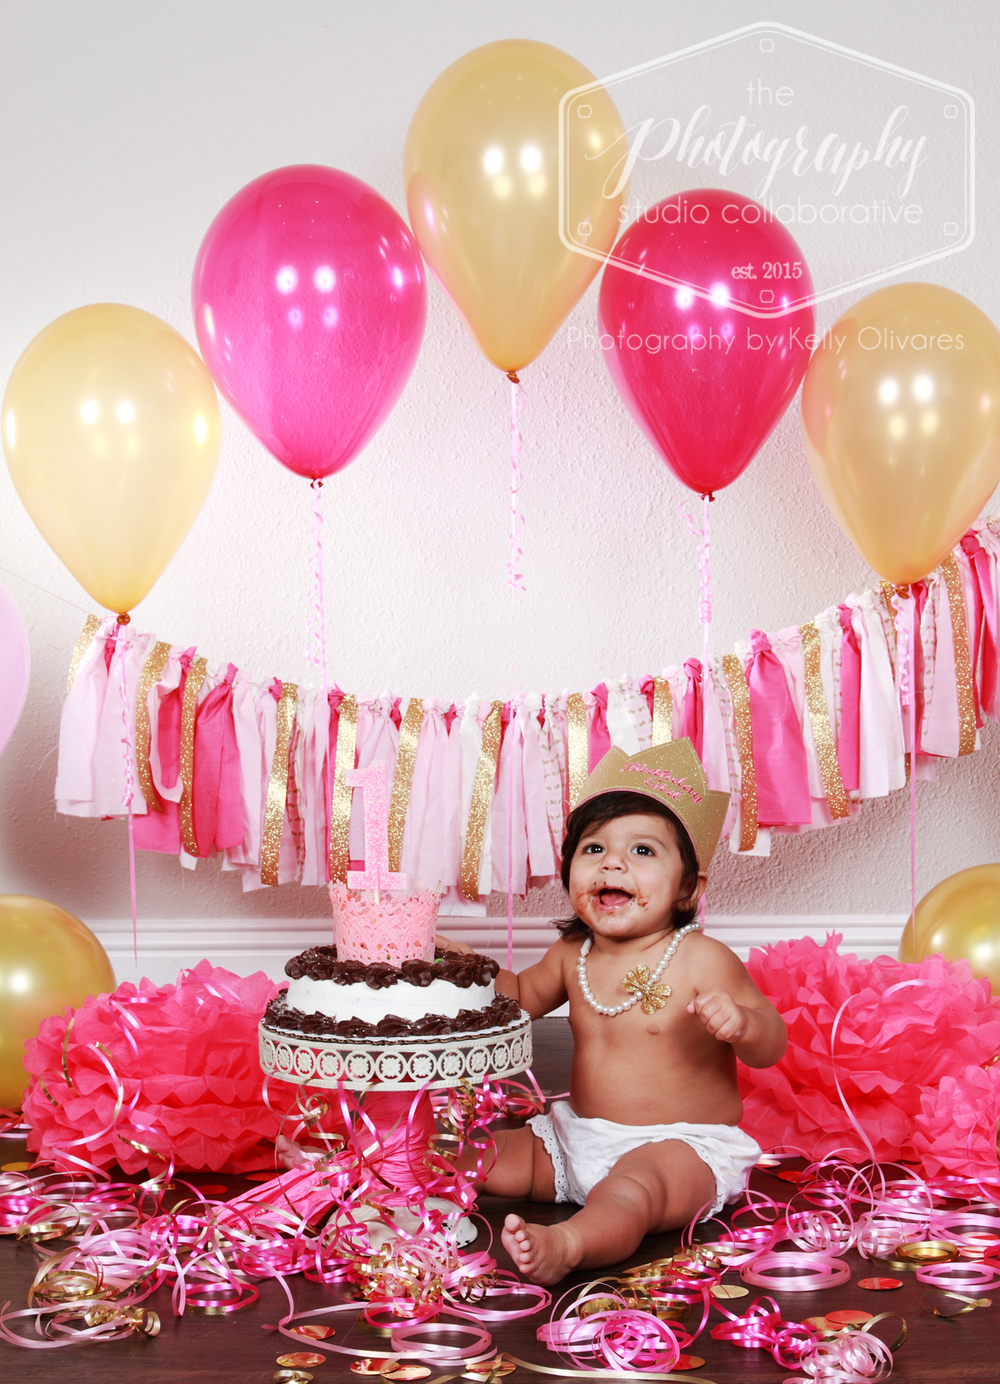 Kelly Olivares Photography Birthday Bash Cake Session.jpg